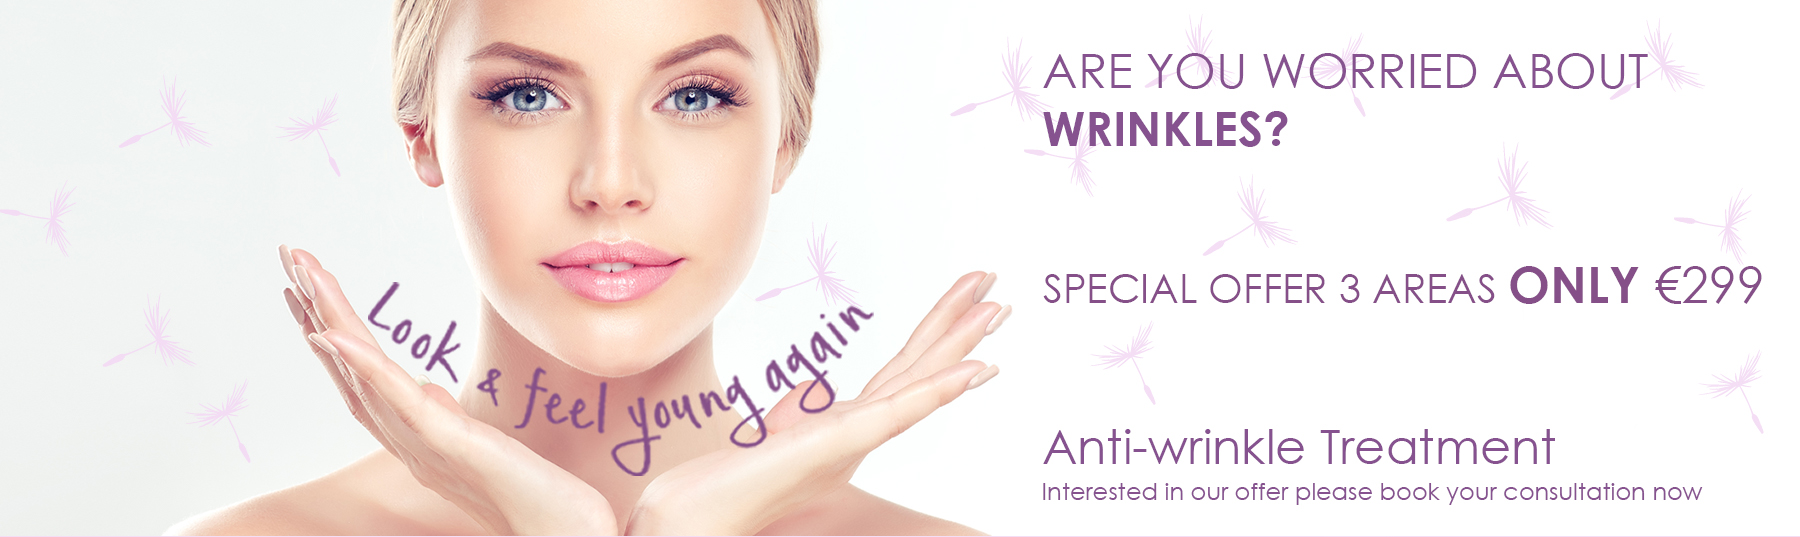 Anti - wrinkle treatments at Gracefield Dental